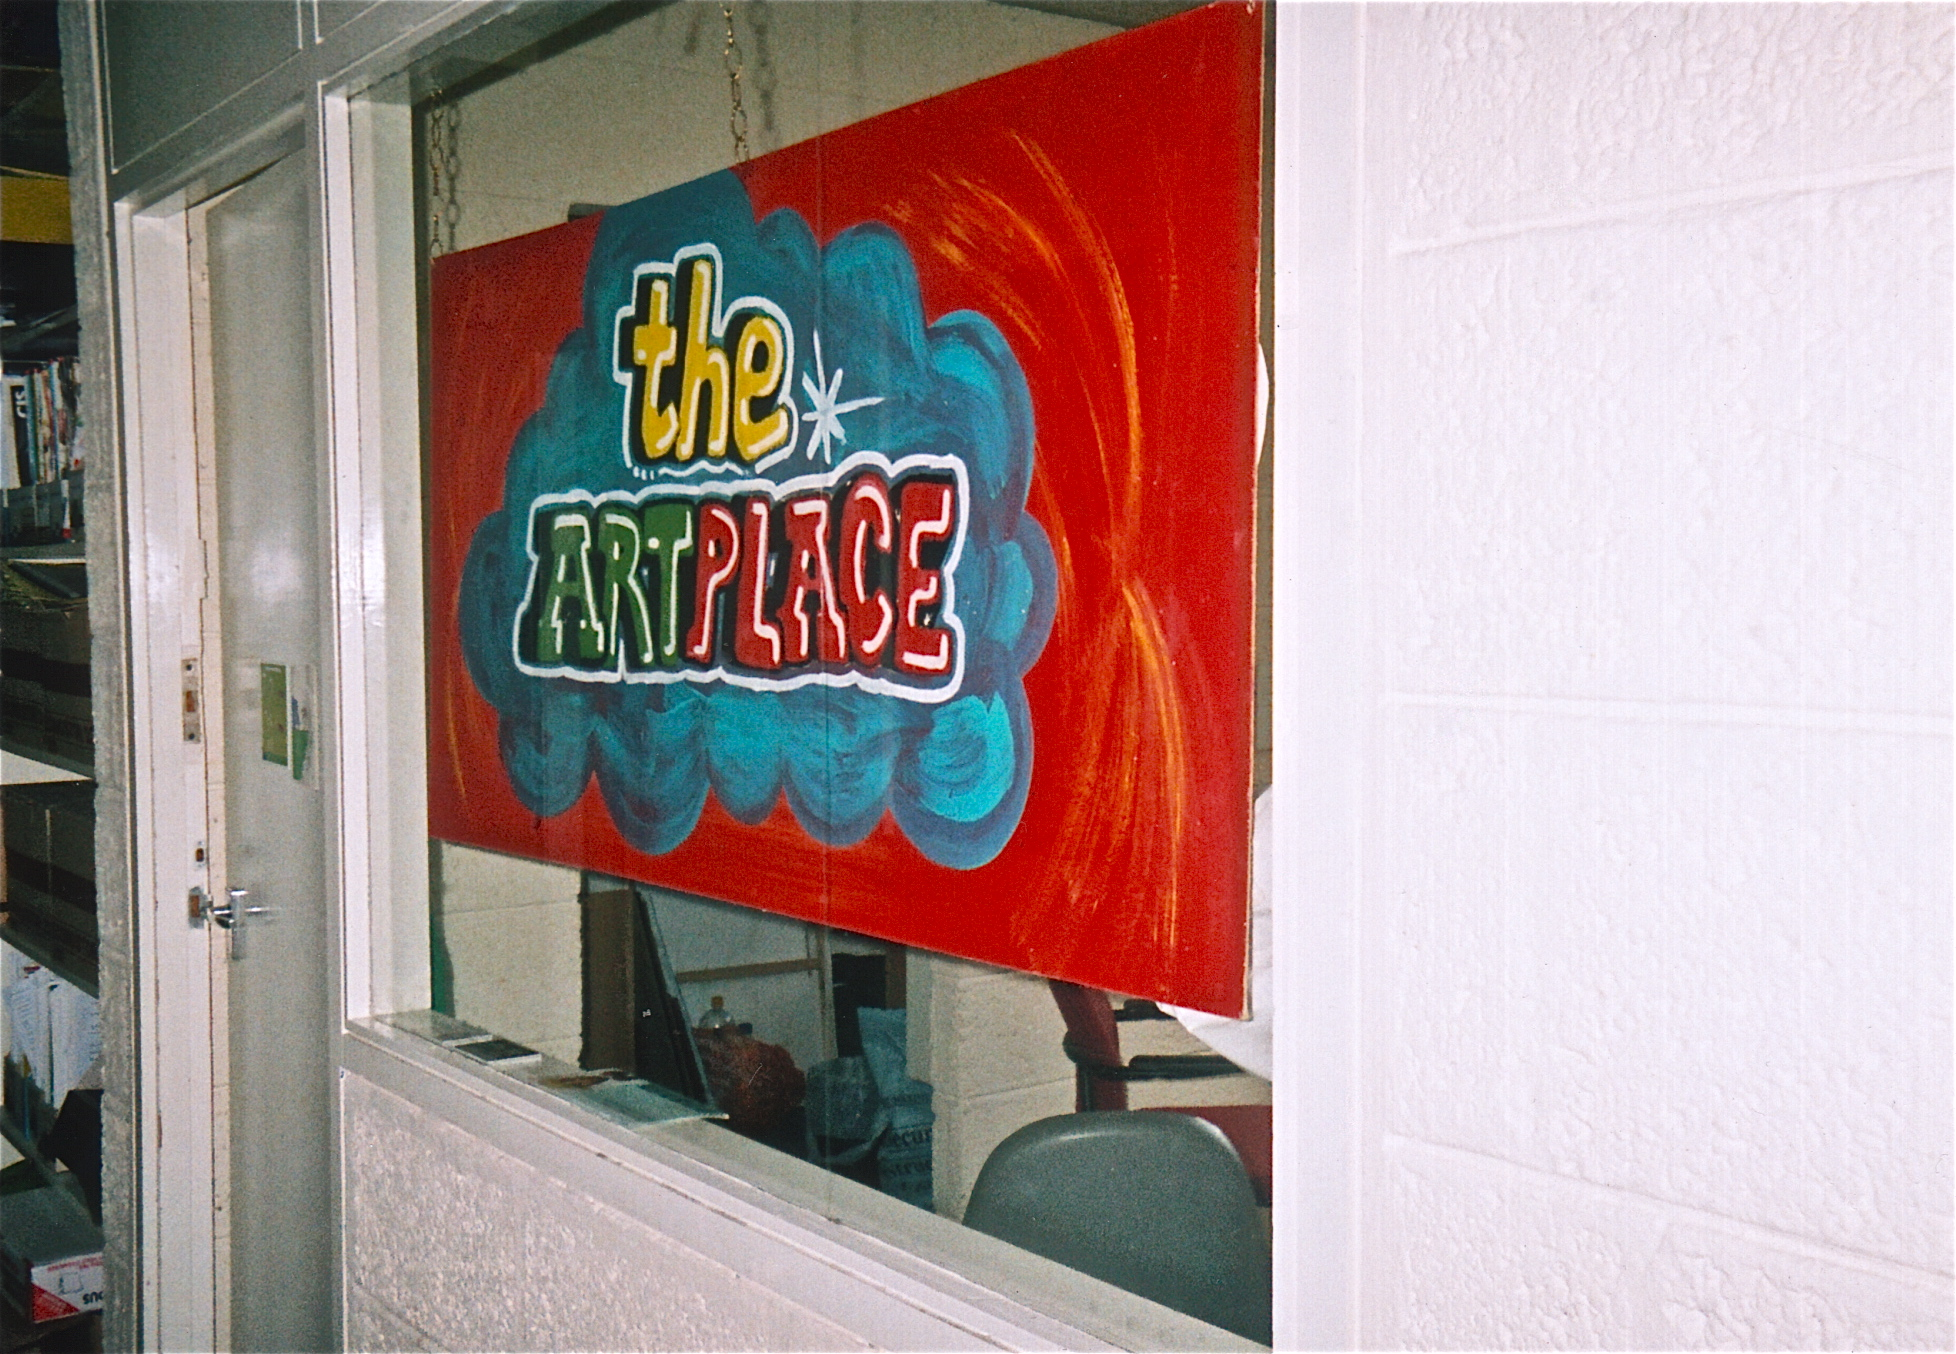 'oxfordshire youth offending service', 'the art place' sign created by a young graffiti artist